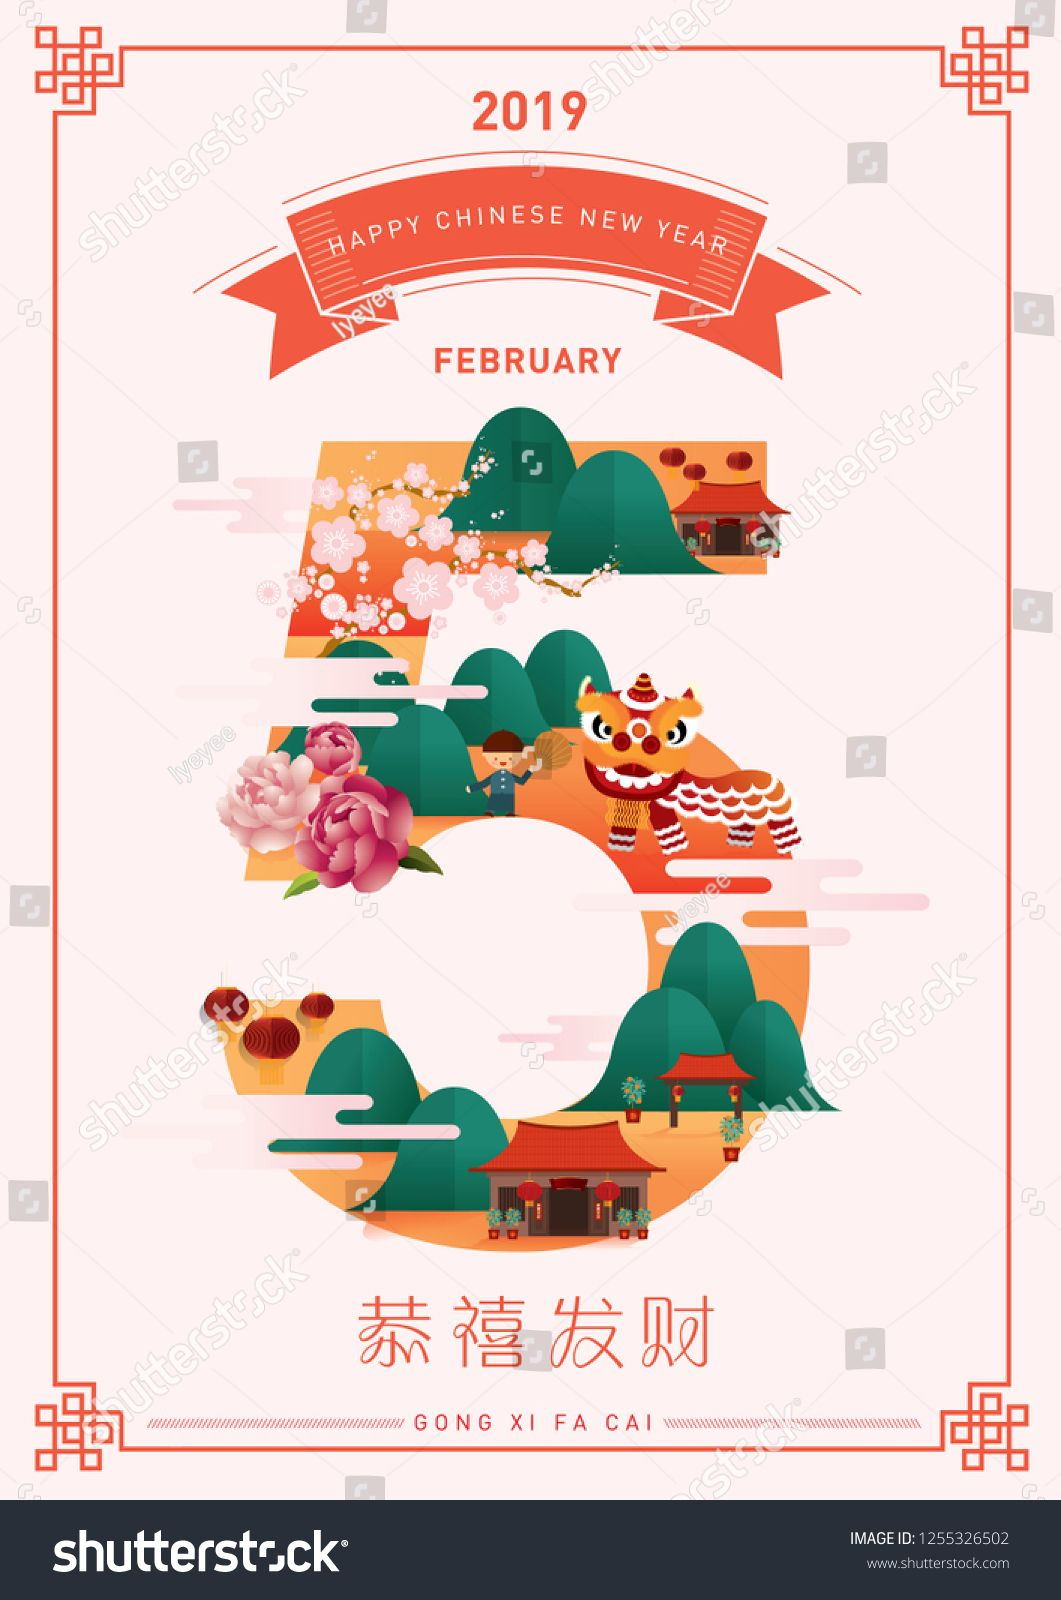 Chinese New Year 2019 Chinese Calendar Greetings Template Vector